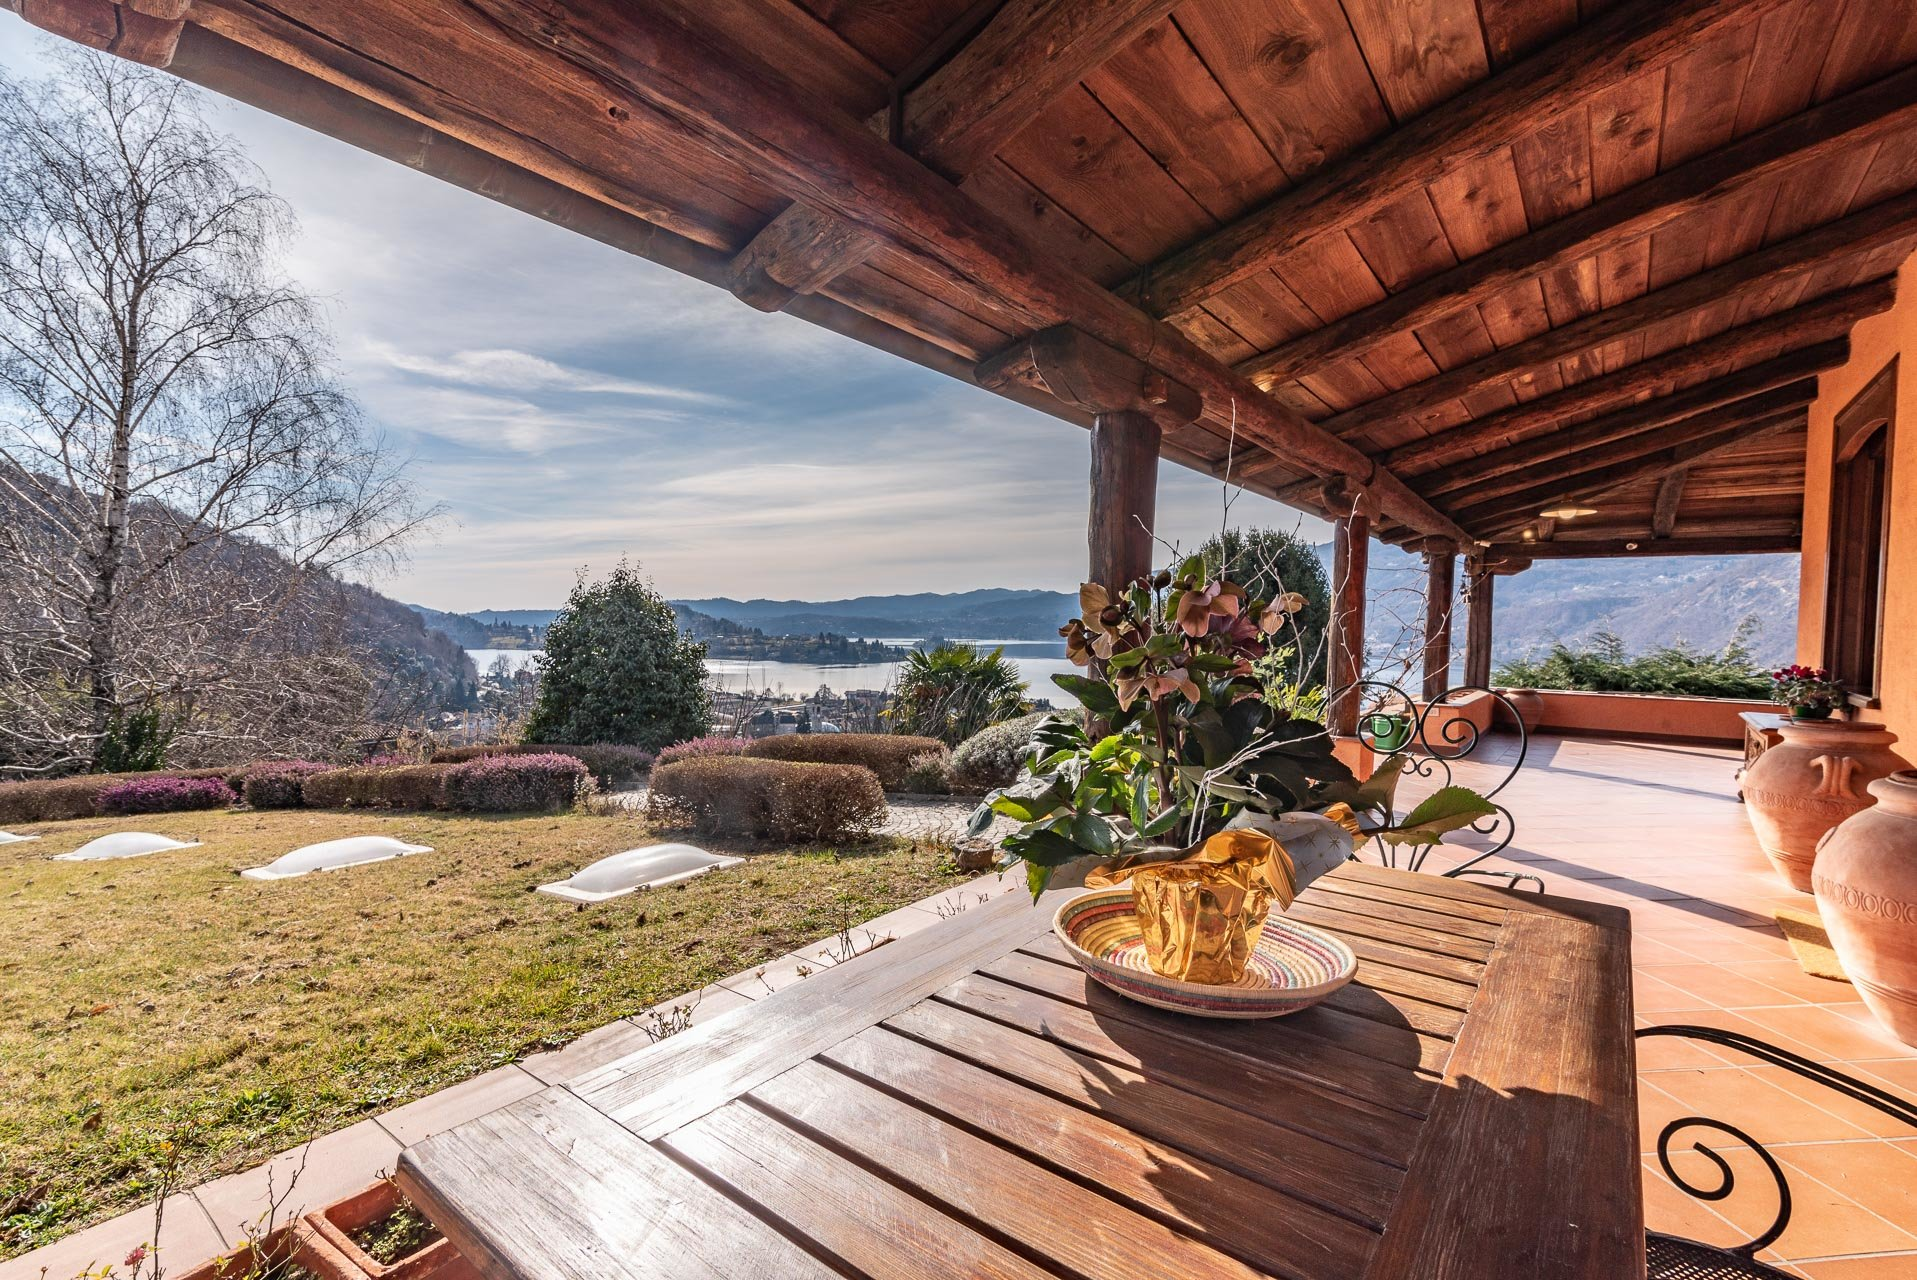 Elegant house for sale in Pettenasco on Lake Orta - lake view porch